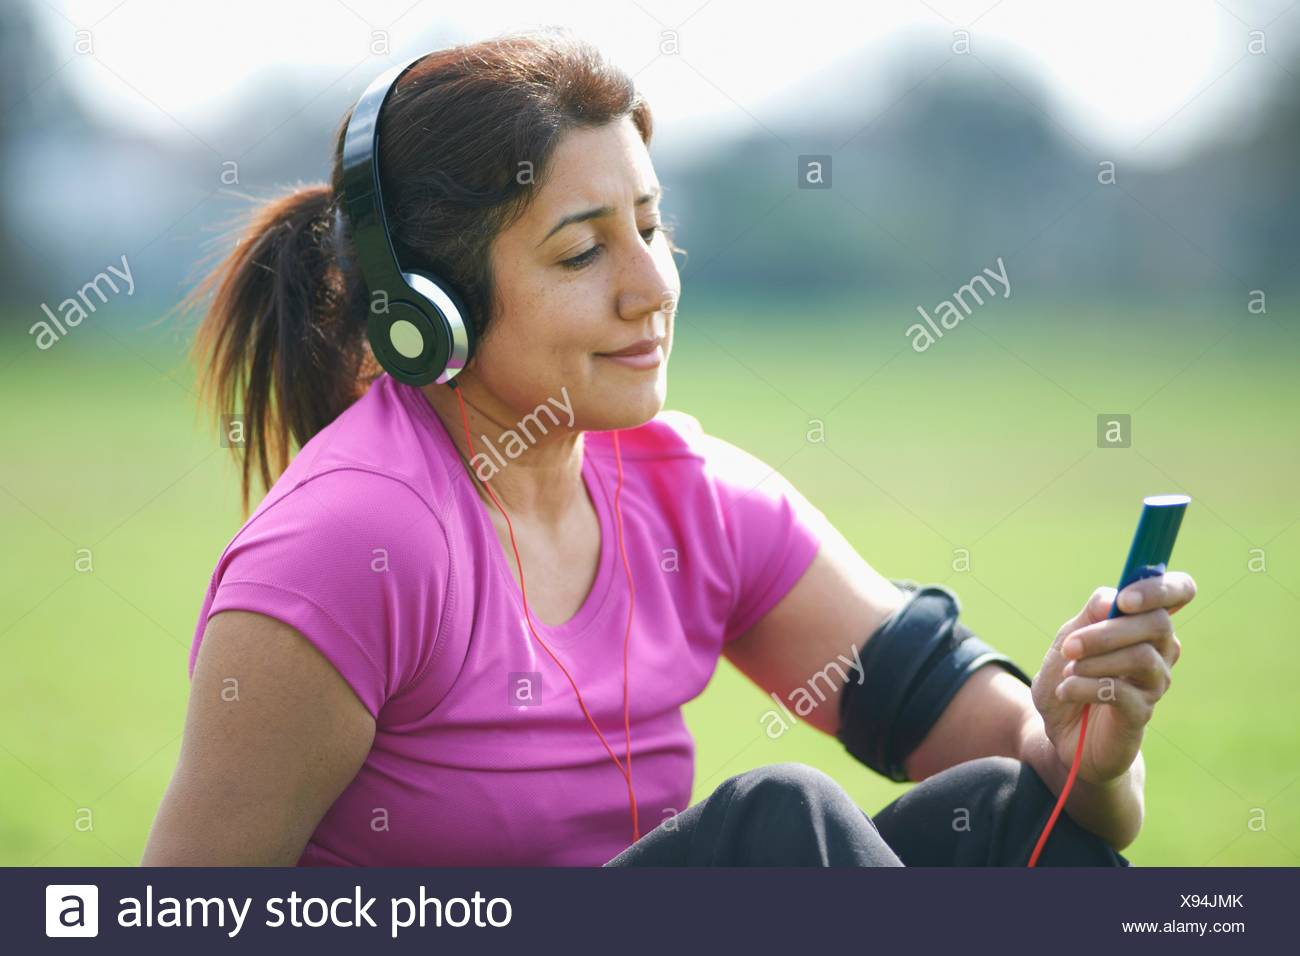 Mature woman taking exercise break in park selecting music from MP3 player - Stock Image